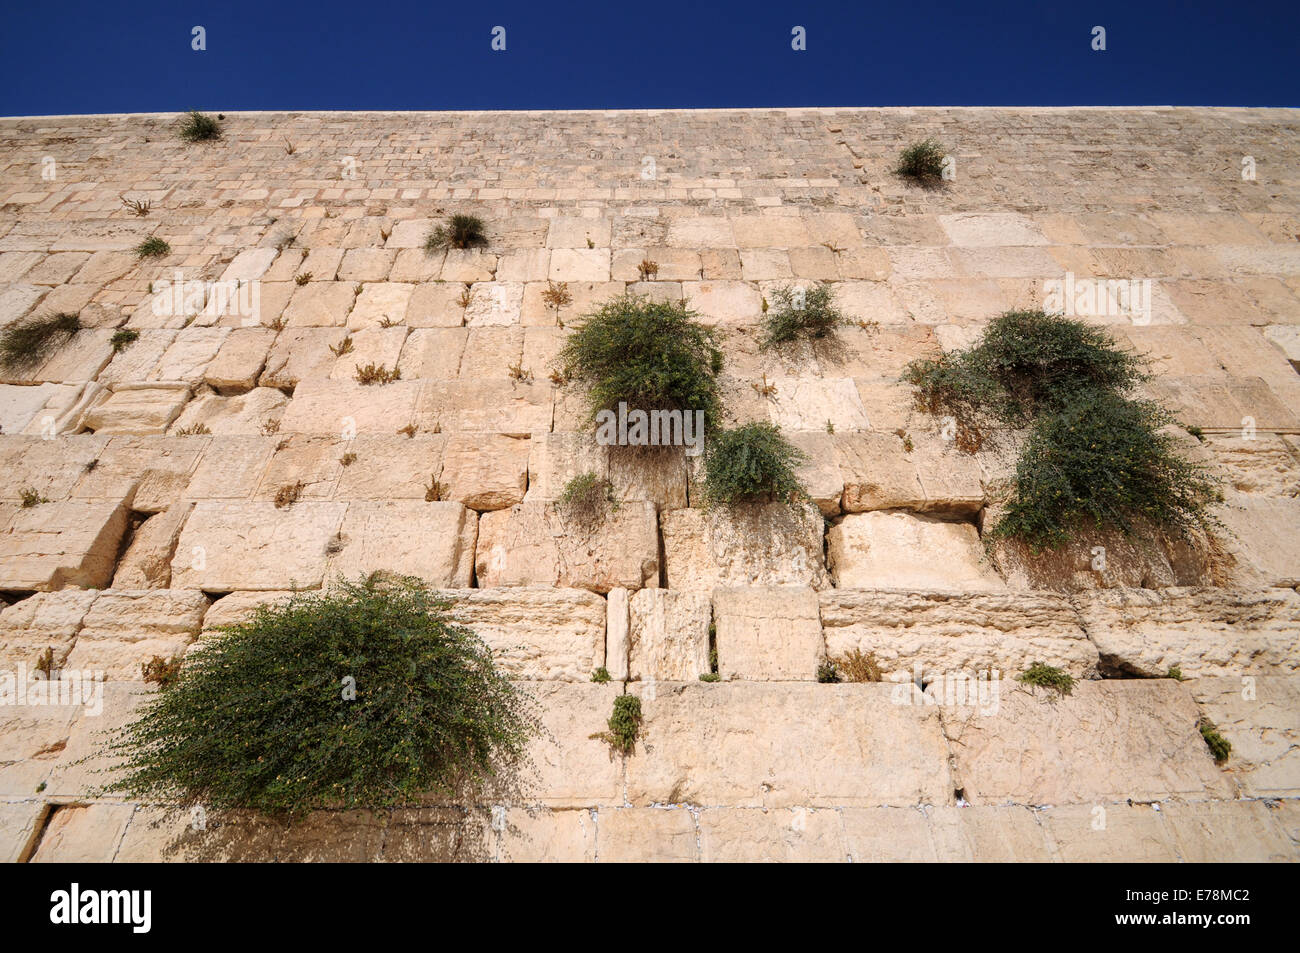 Capers growing on the wailing wall, Jerusalem, Israel - Stock Image